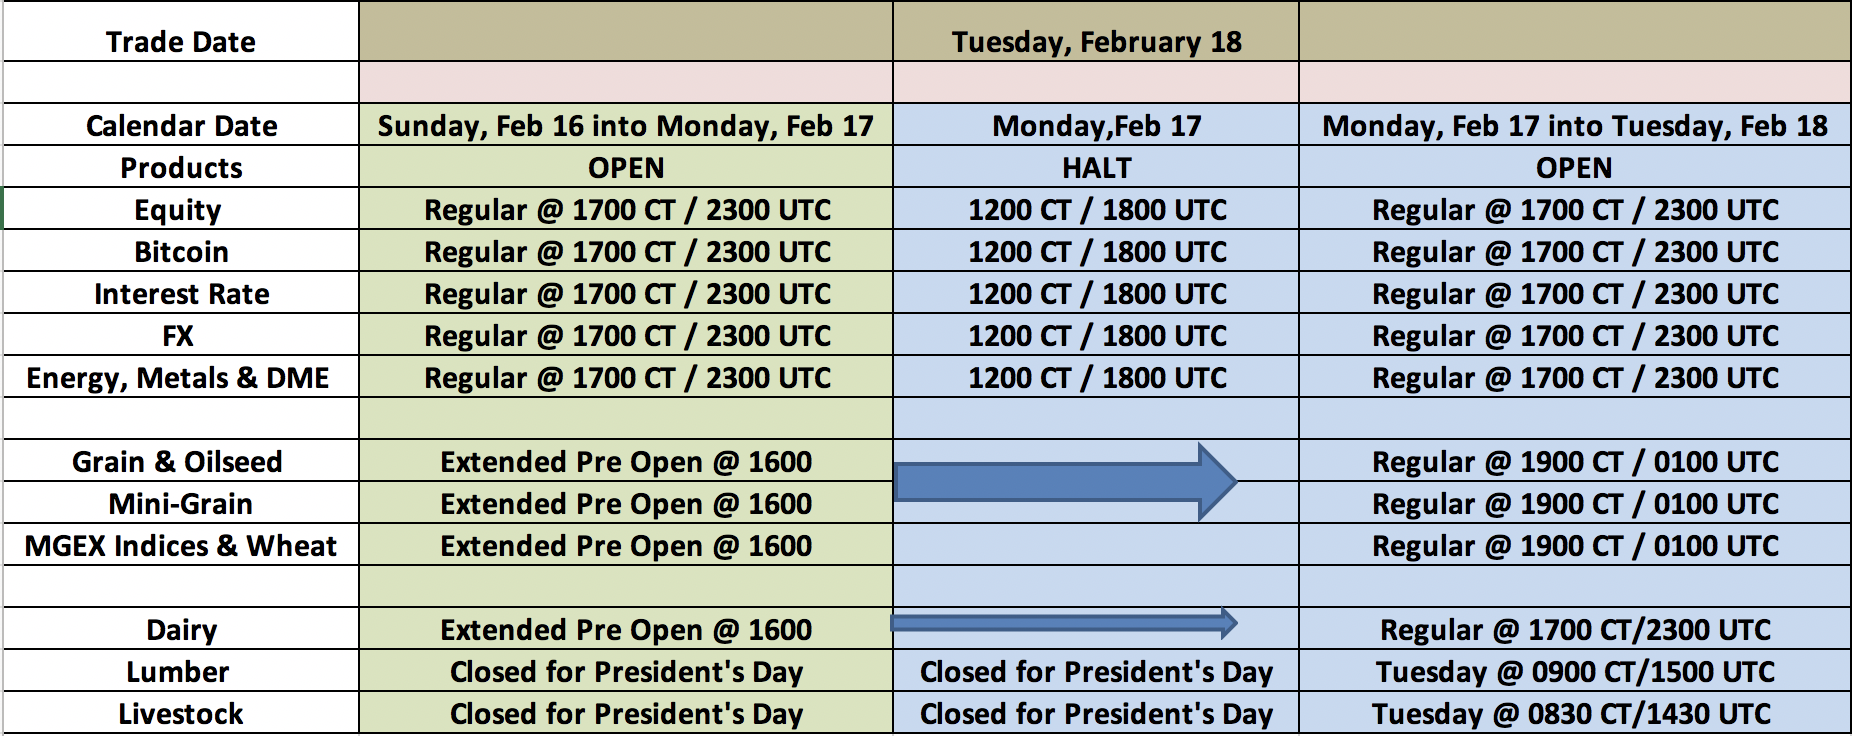 _CME_Group_Globex_Presidents_Day_Holiday_Schedule_-_2020.png